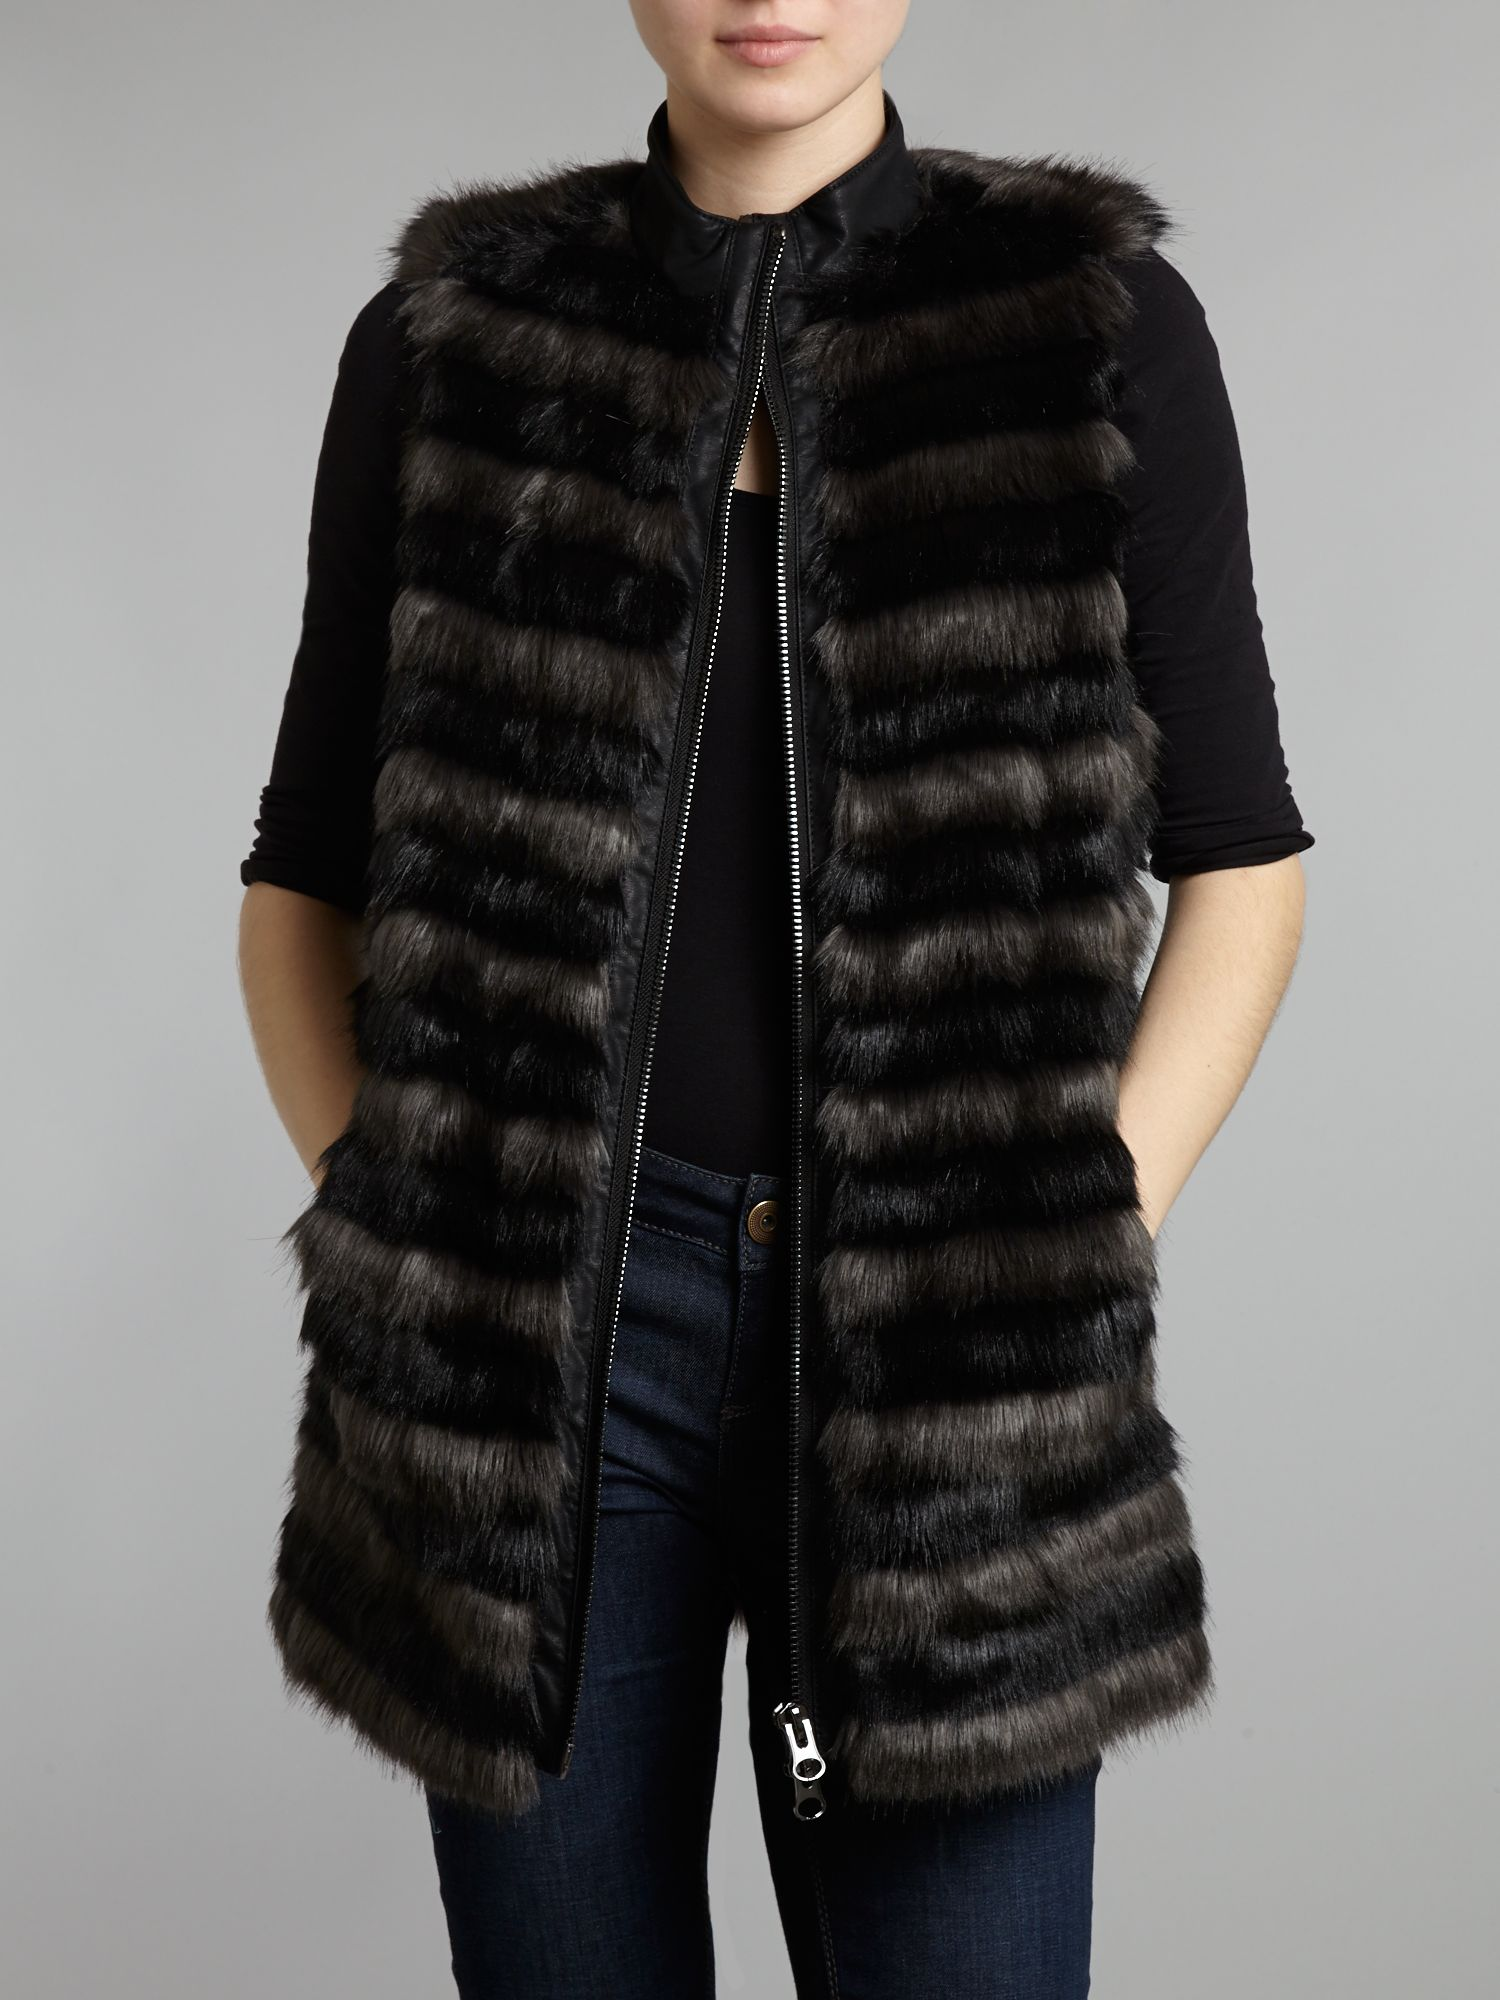 'Embrace the faux fur gilet trend with this on-point piece. We designed it with a lovely sleek fur which lies flat and doesn't add bulk. Layer it up with jerseys and knits and when temperatures dip add a denim or leather jacket.'/5(7).